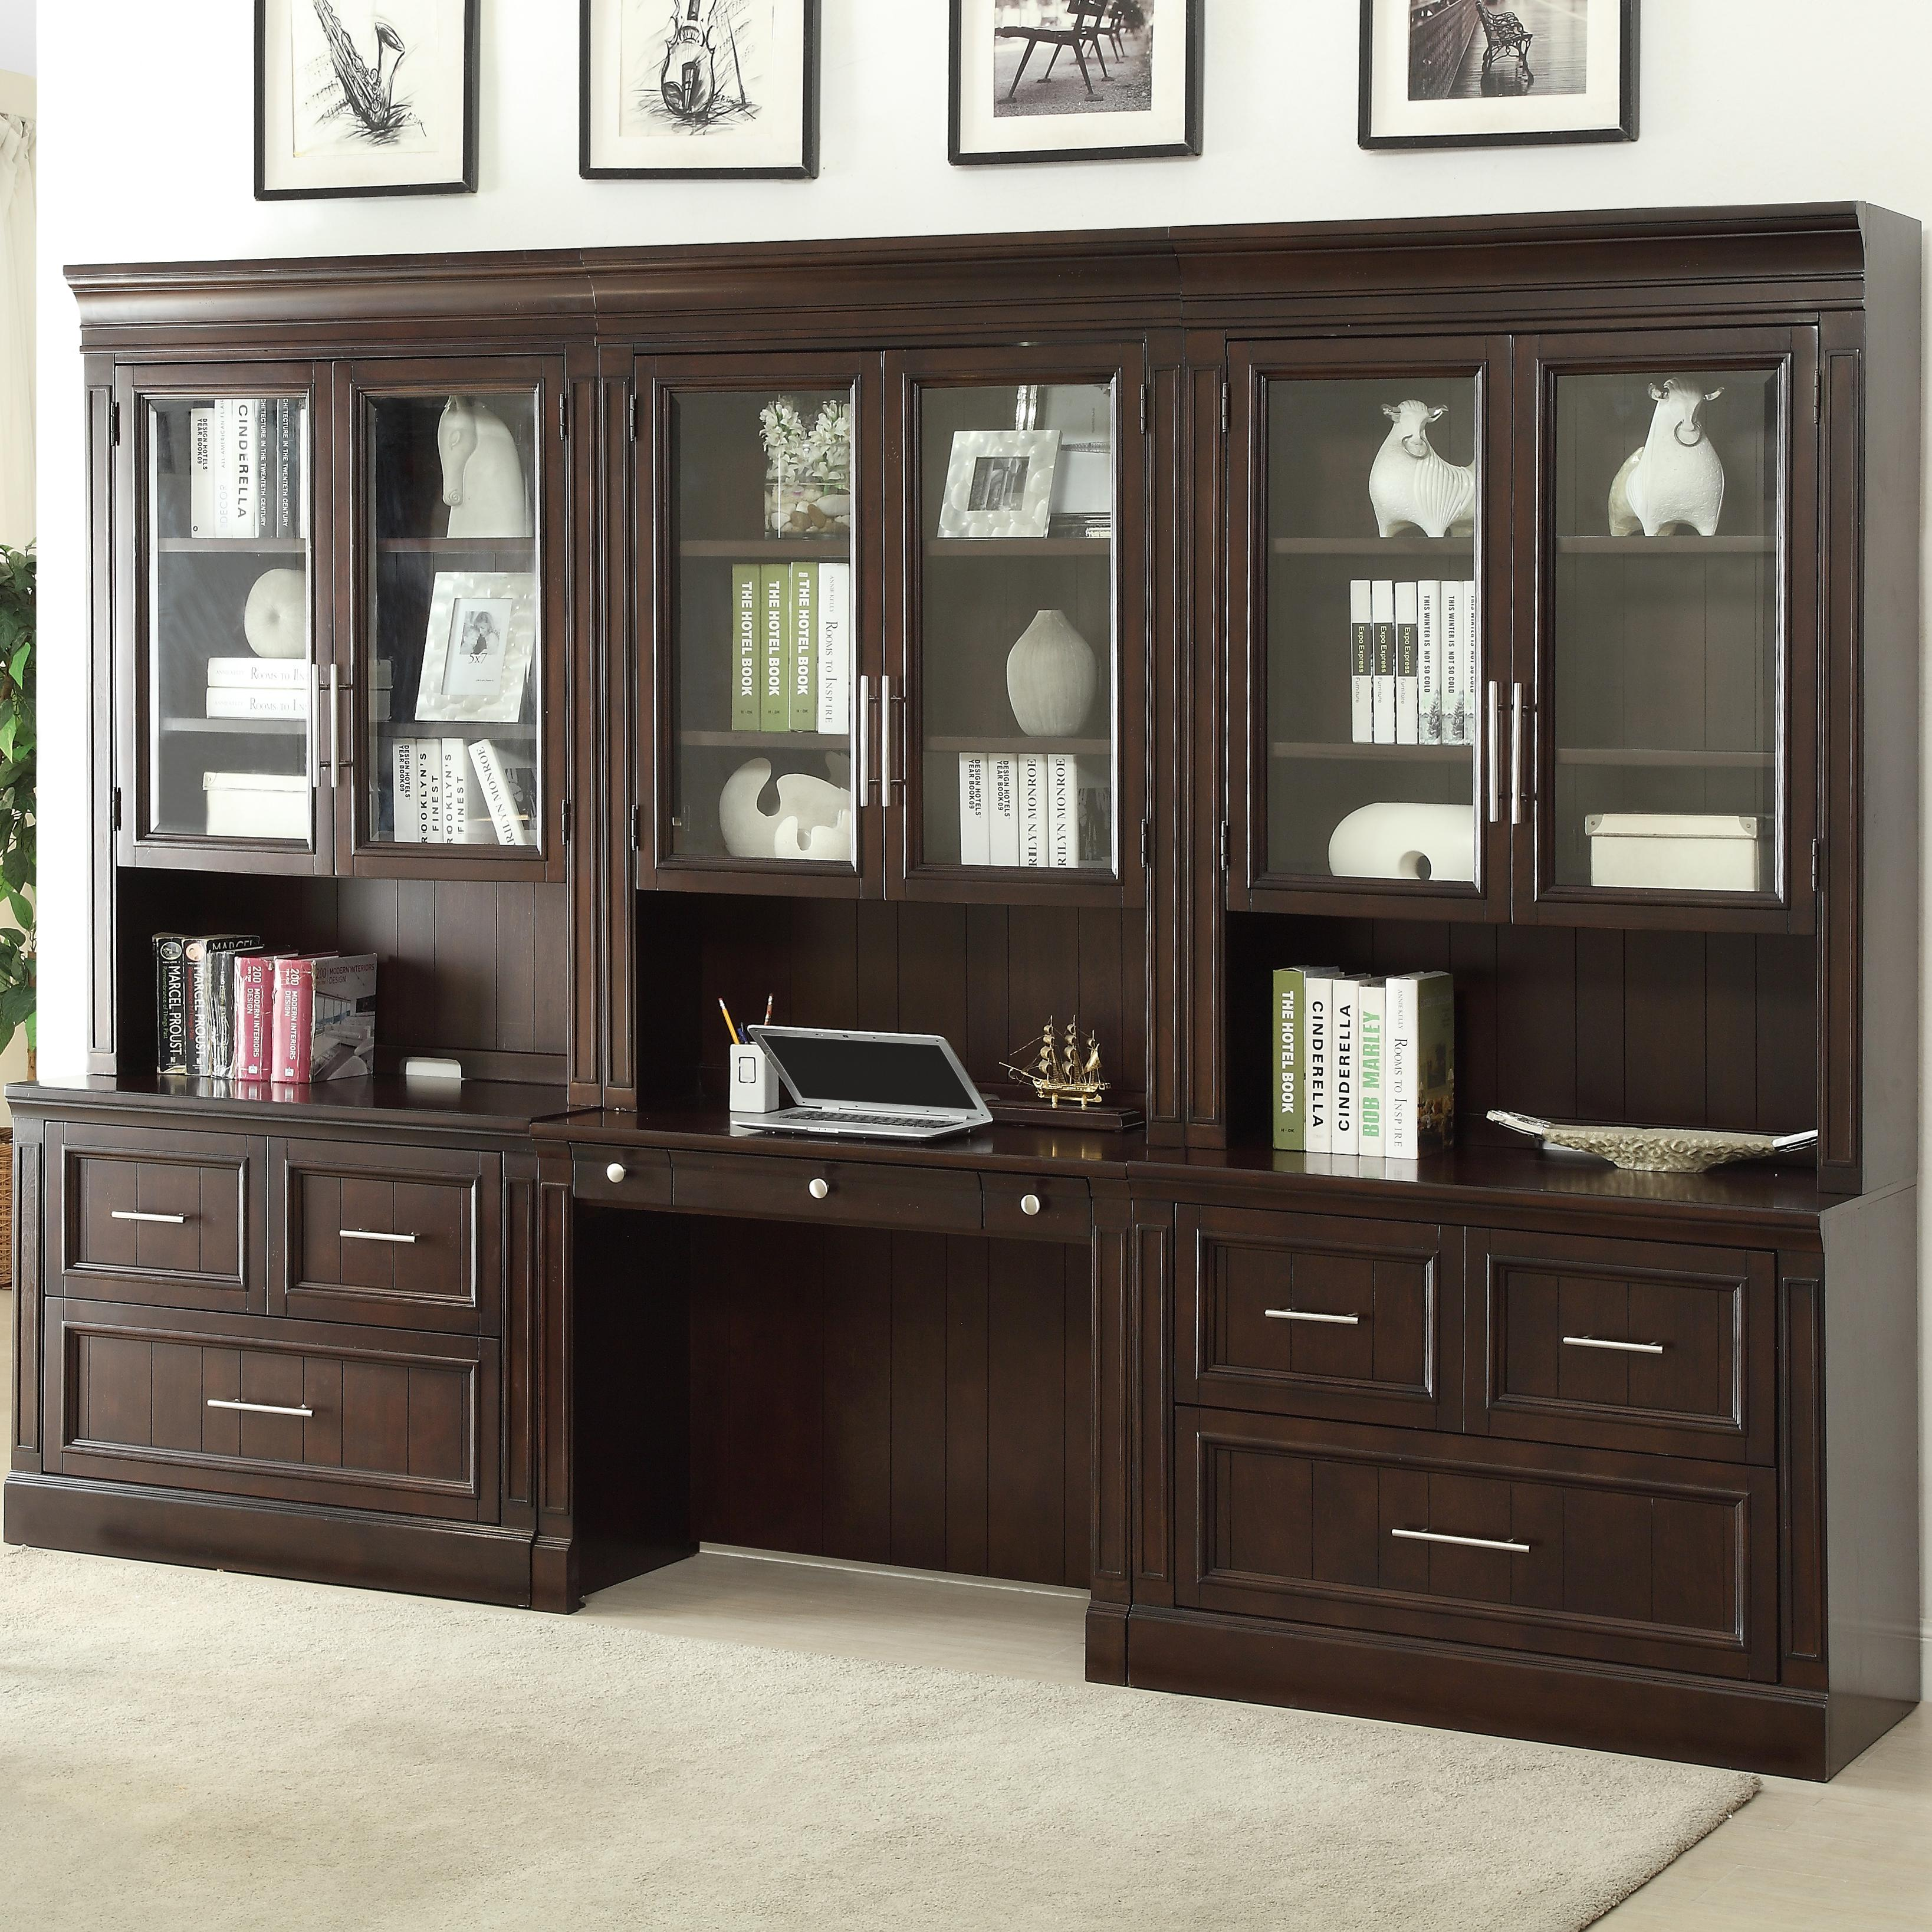 Marvelous Stanford Wall Unit With Lateral Files And Built In Desk By Parker House At Lindys Furniture Company Home Interior And Landscaping Spoatsignezvosmurscom